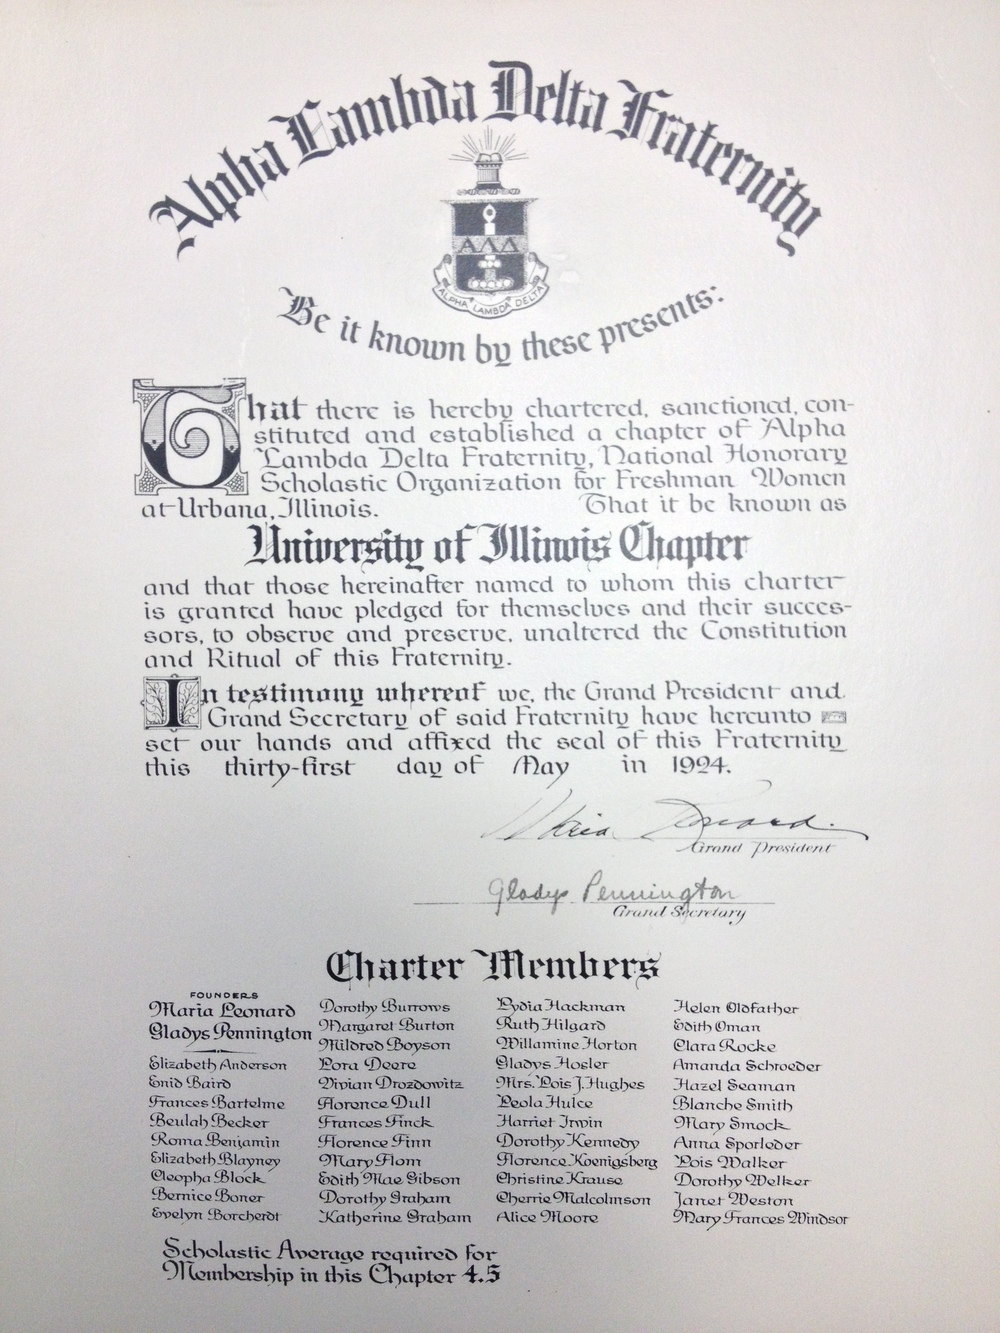 the charter of the first alpha lambda delta chapter at the university of illinois, 1924